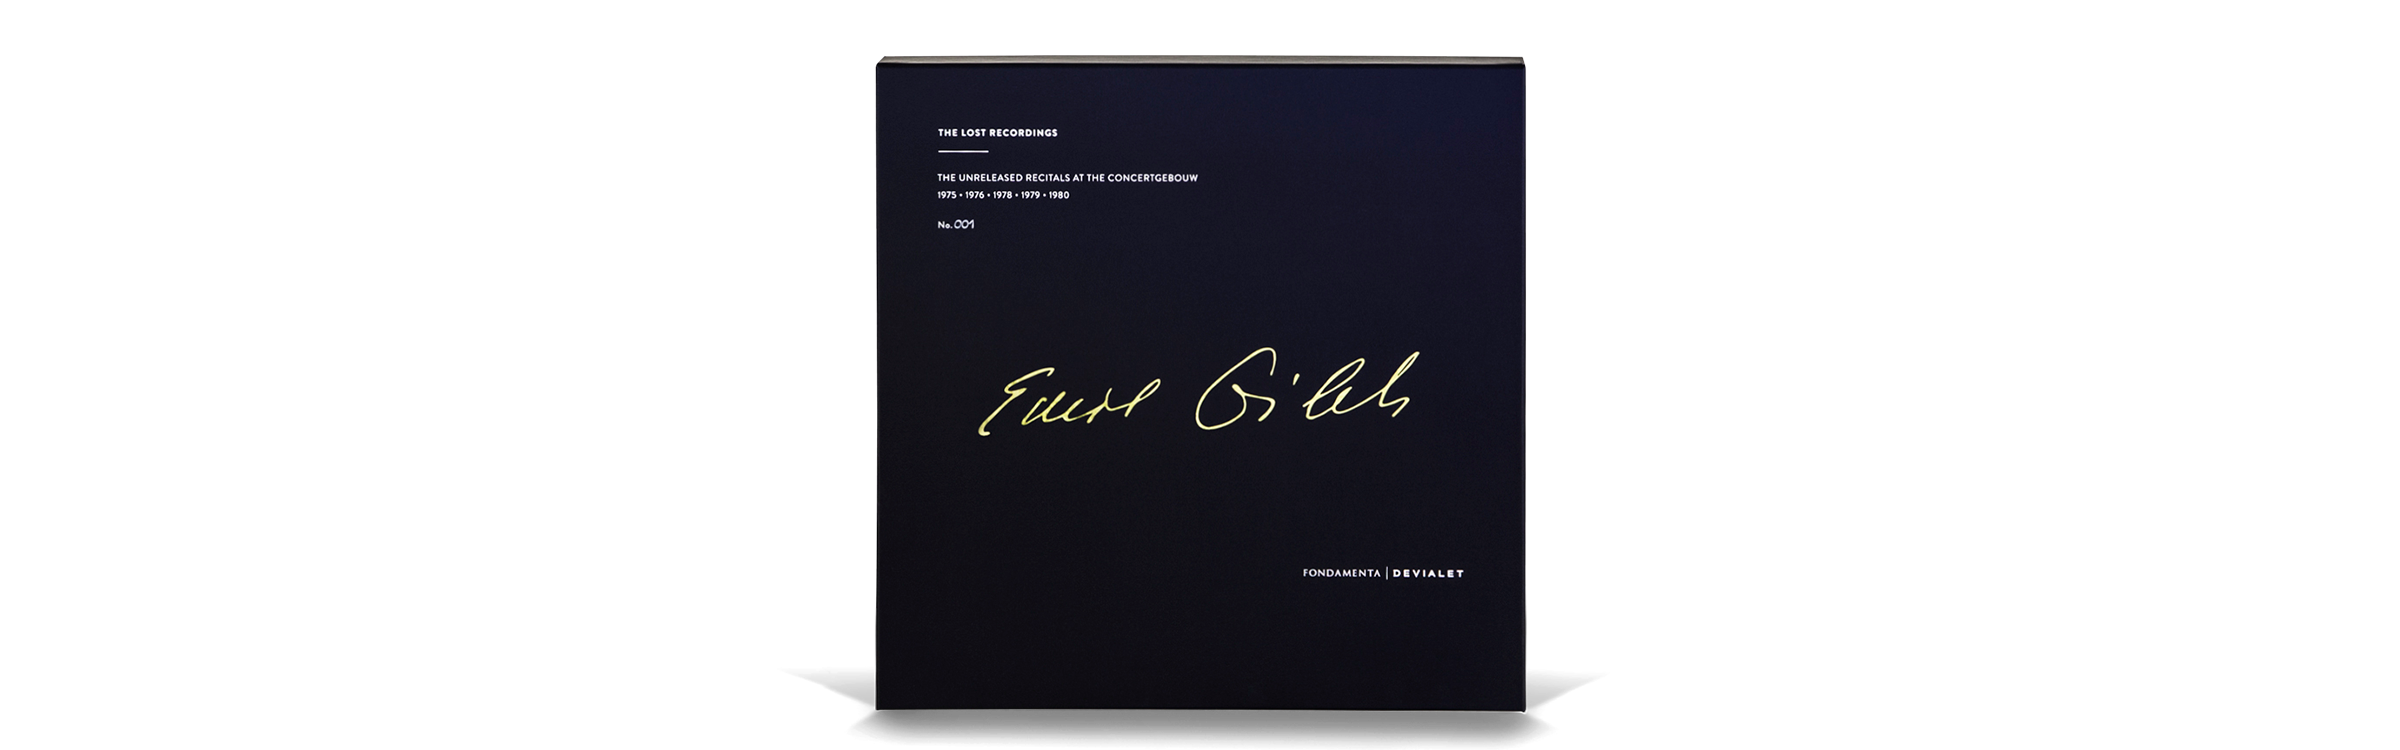 Devialet - The Lost Recordings - Emil Gilels - 1